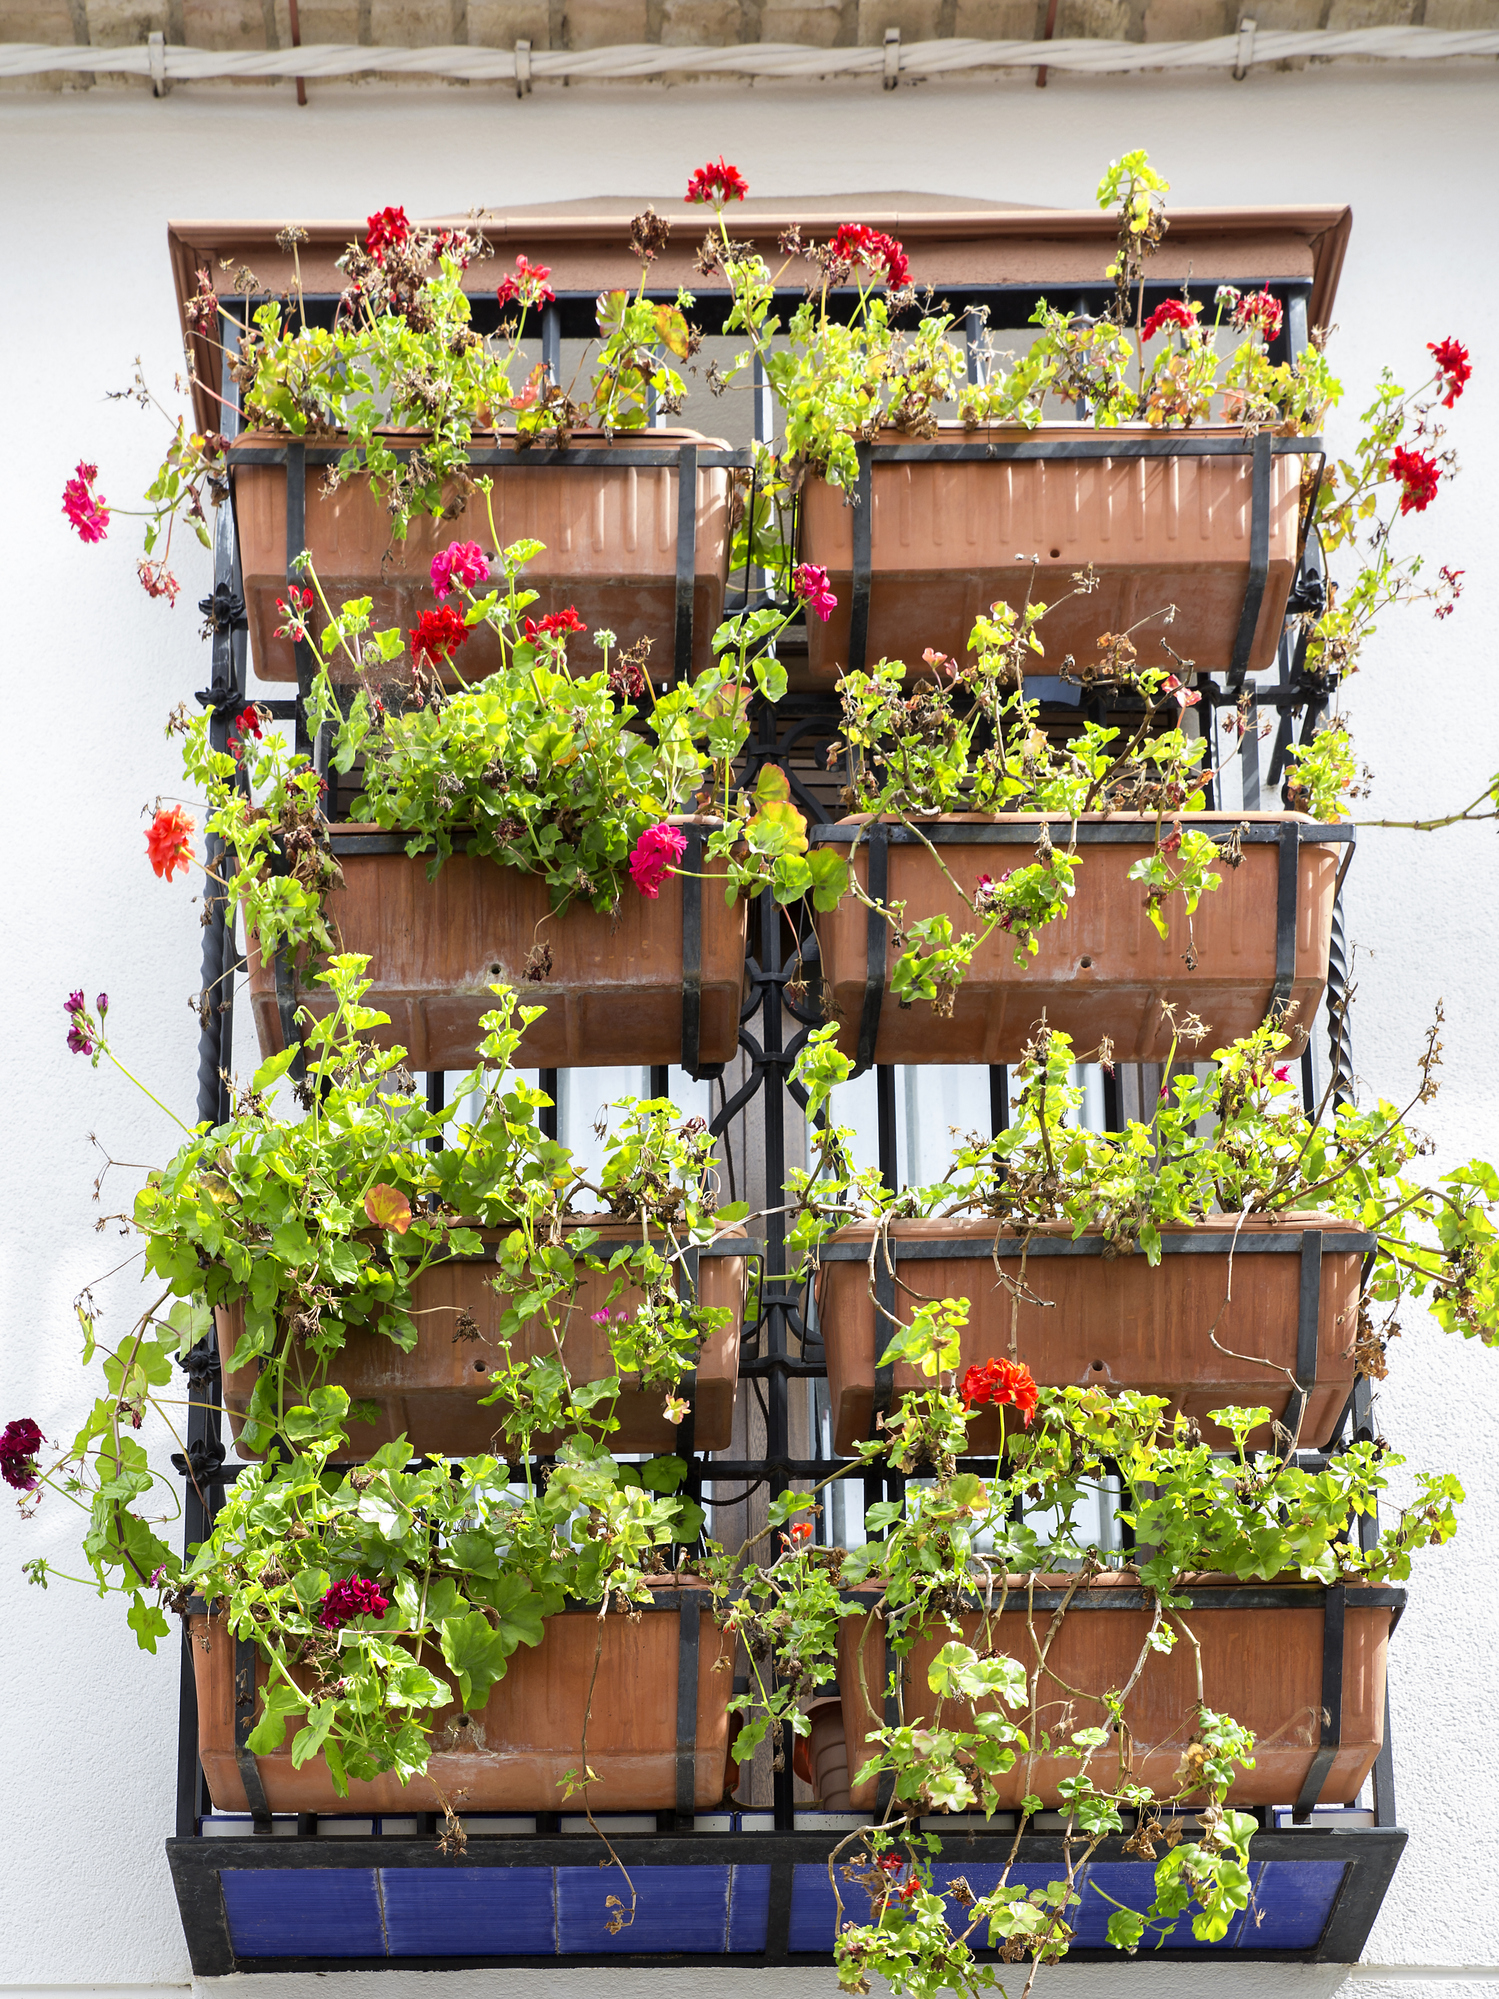 window decorated with red geranium pots on andalusian facade. Cordoba, Spain representing eco-friendly features